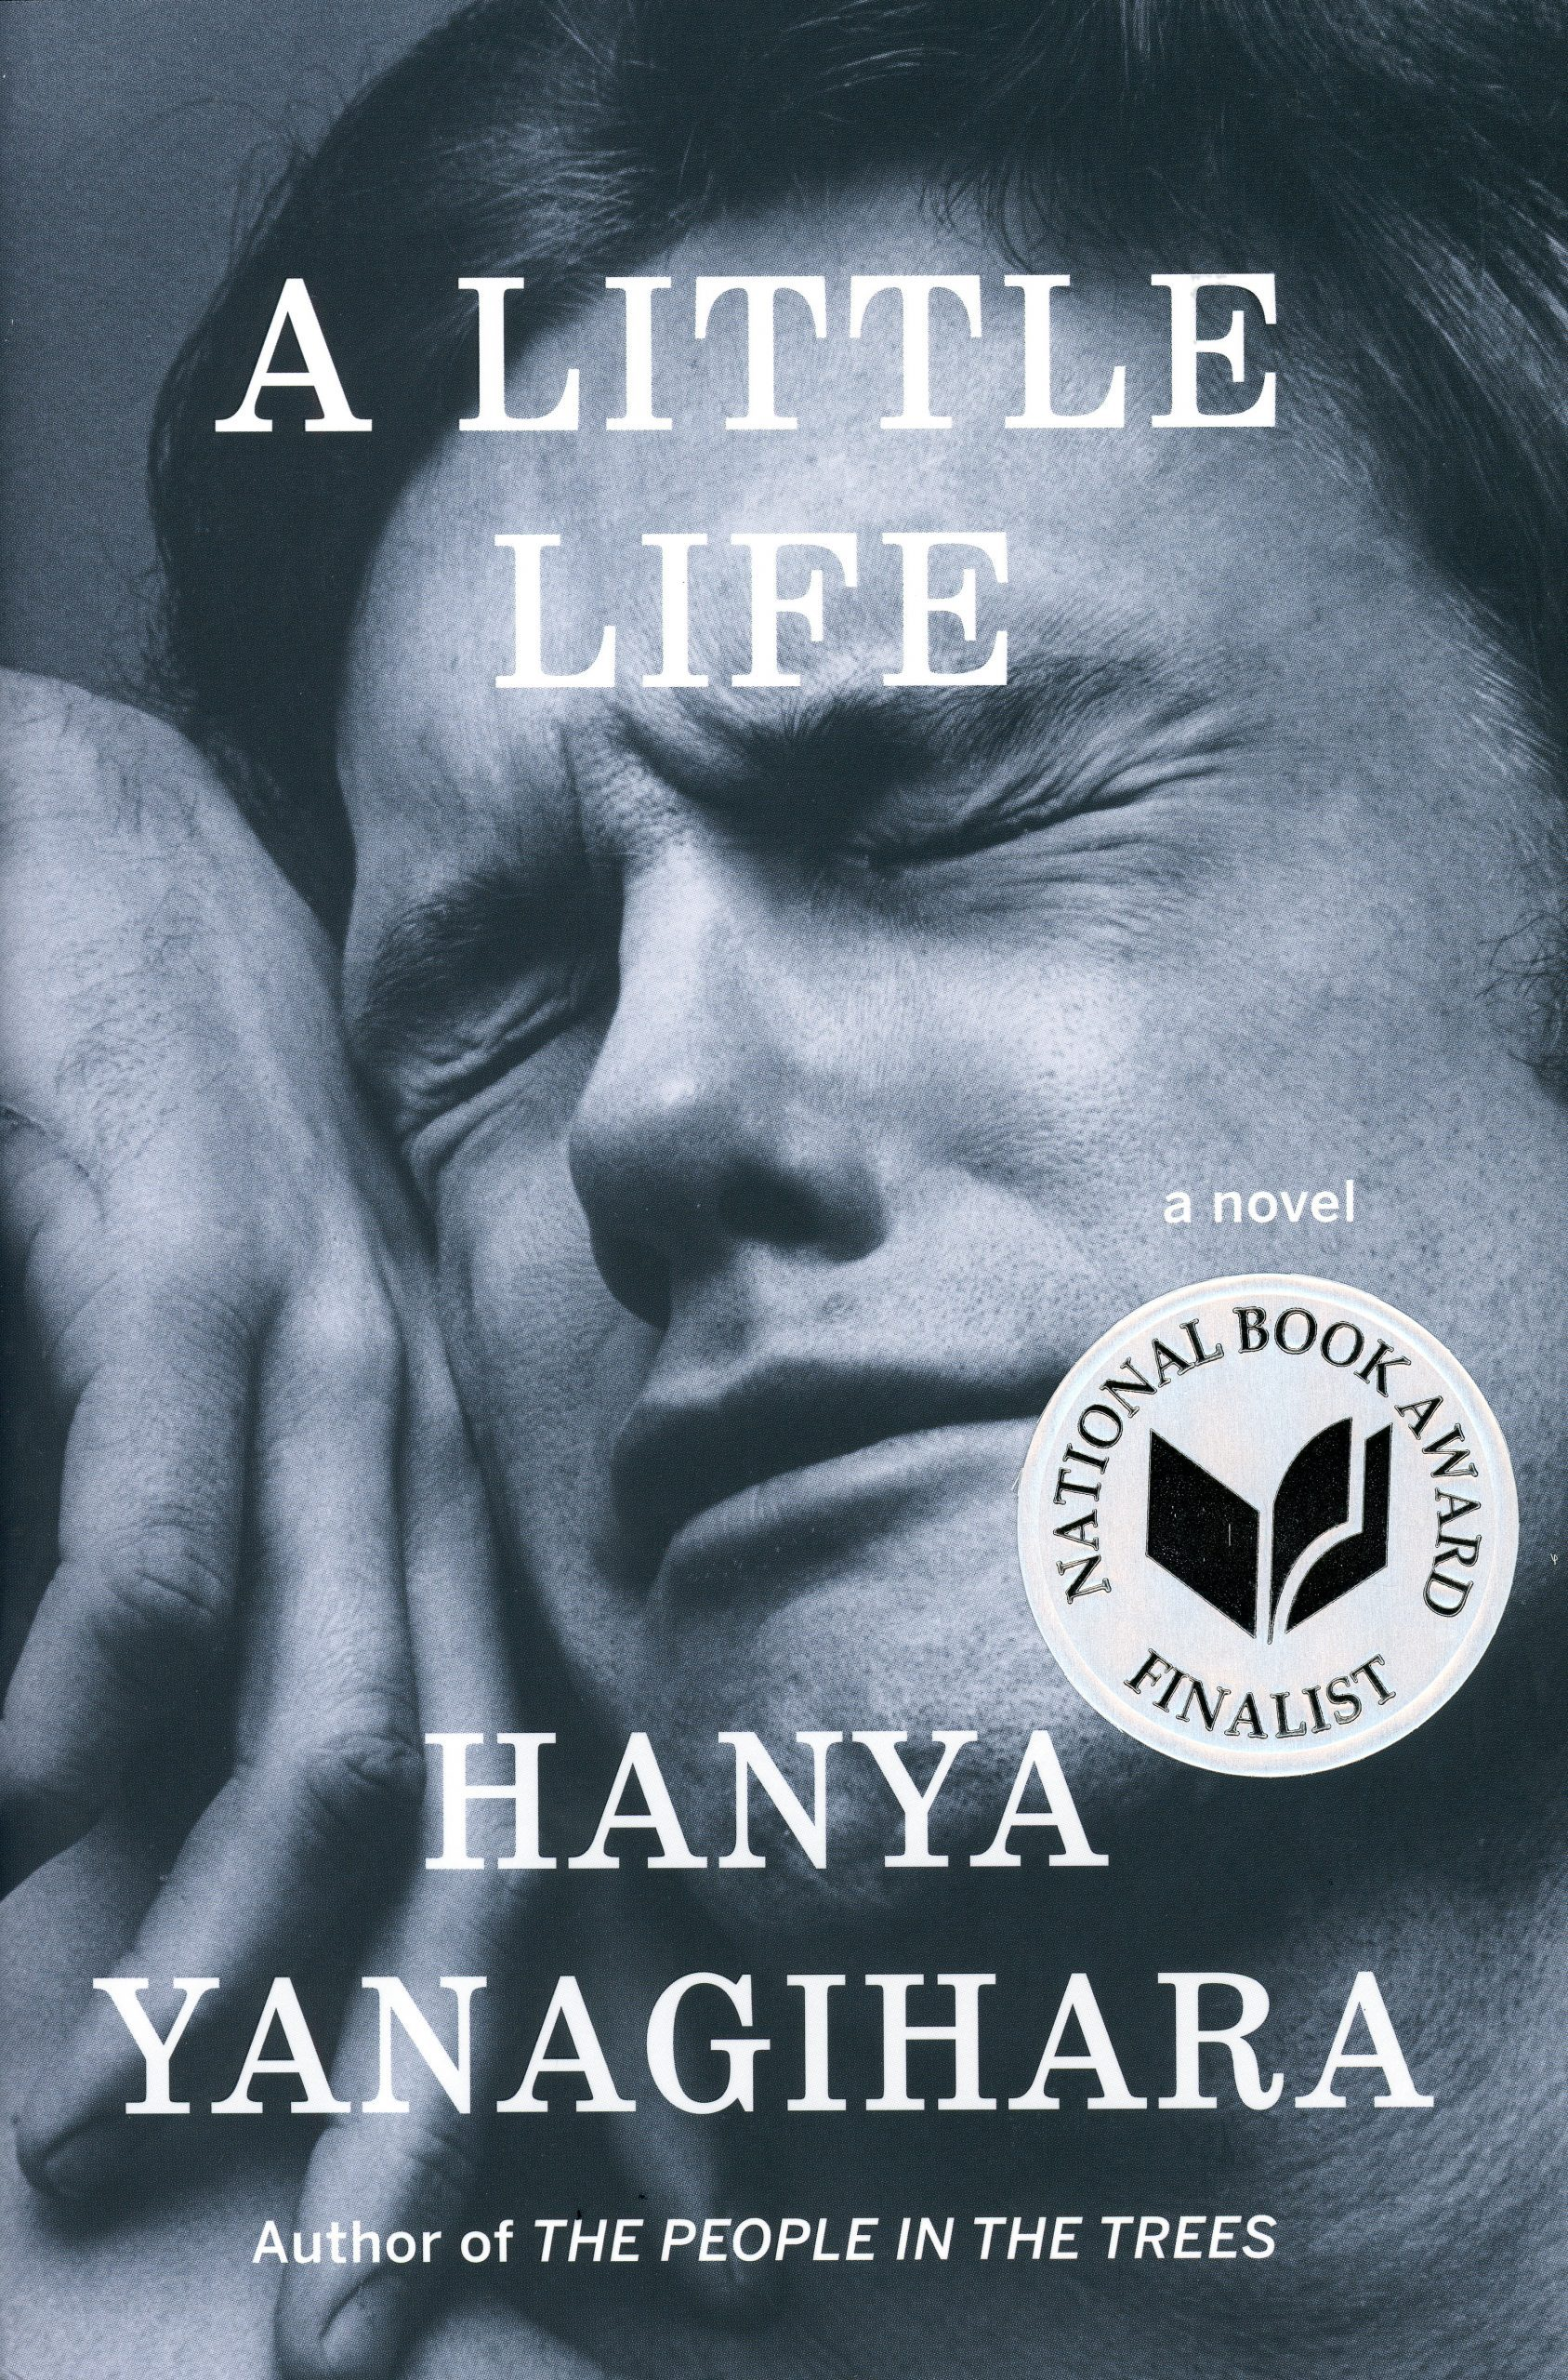 A Little Life by Hanya Yanagihara book cover, 2015